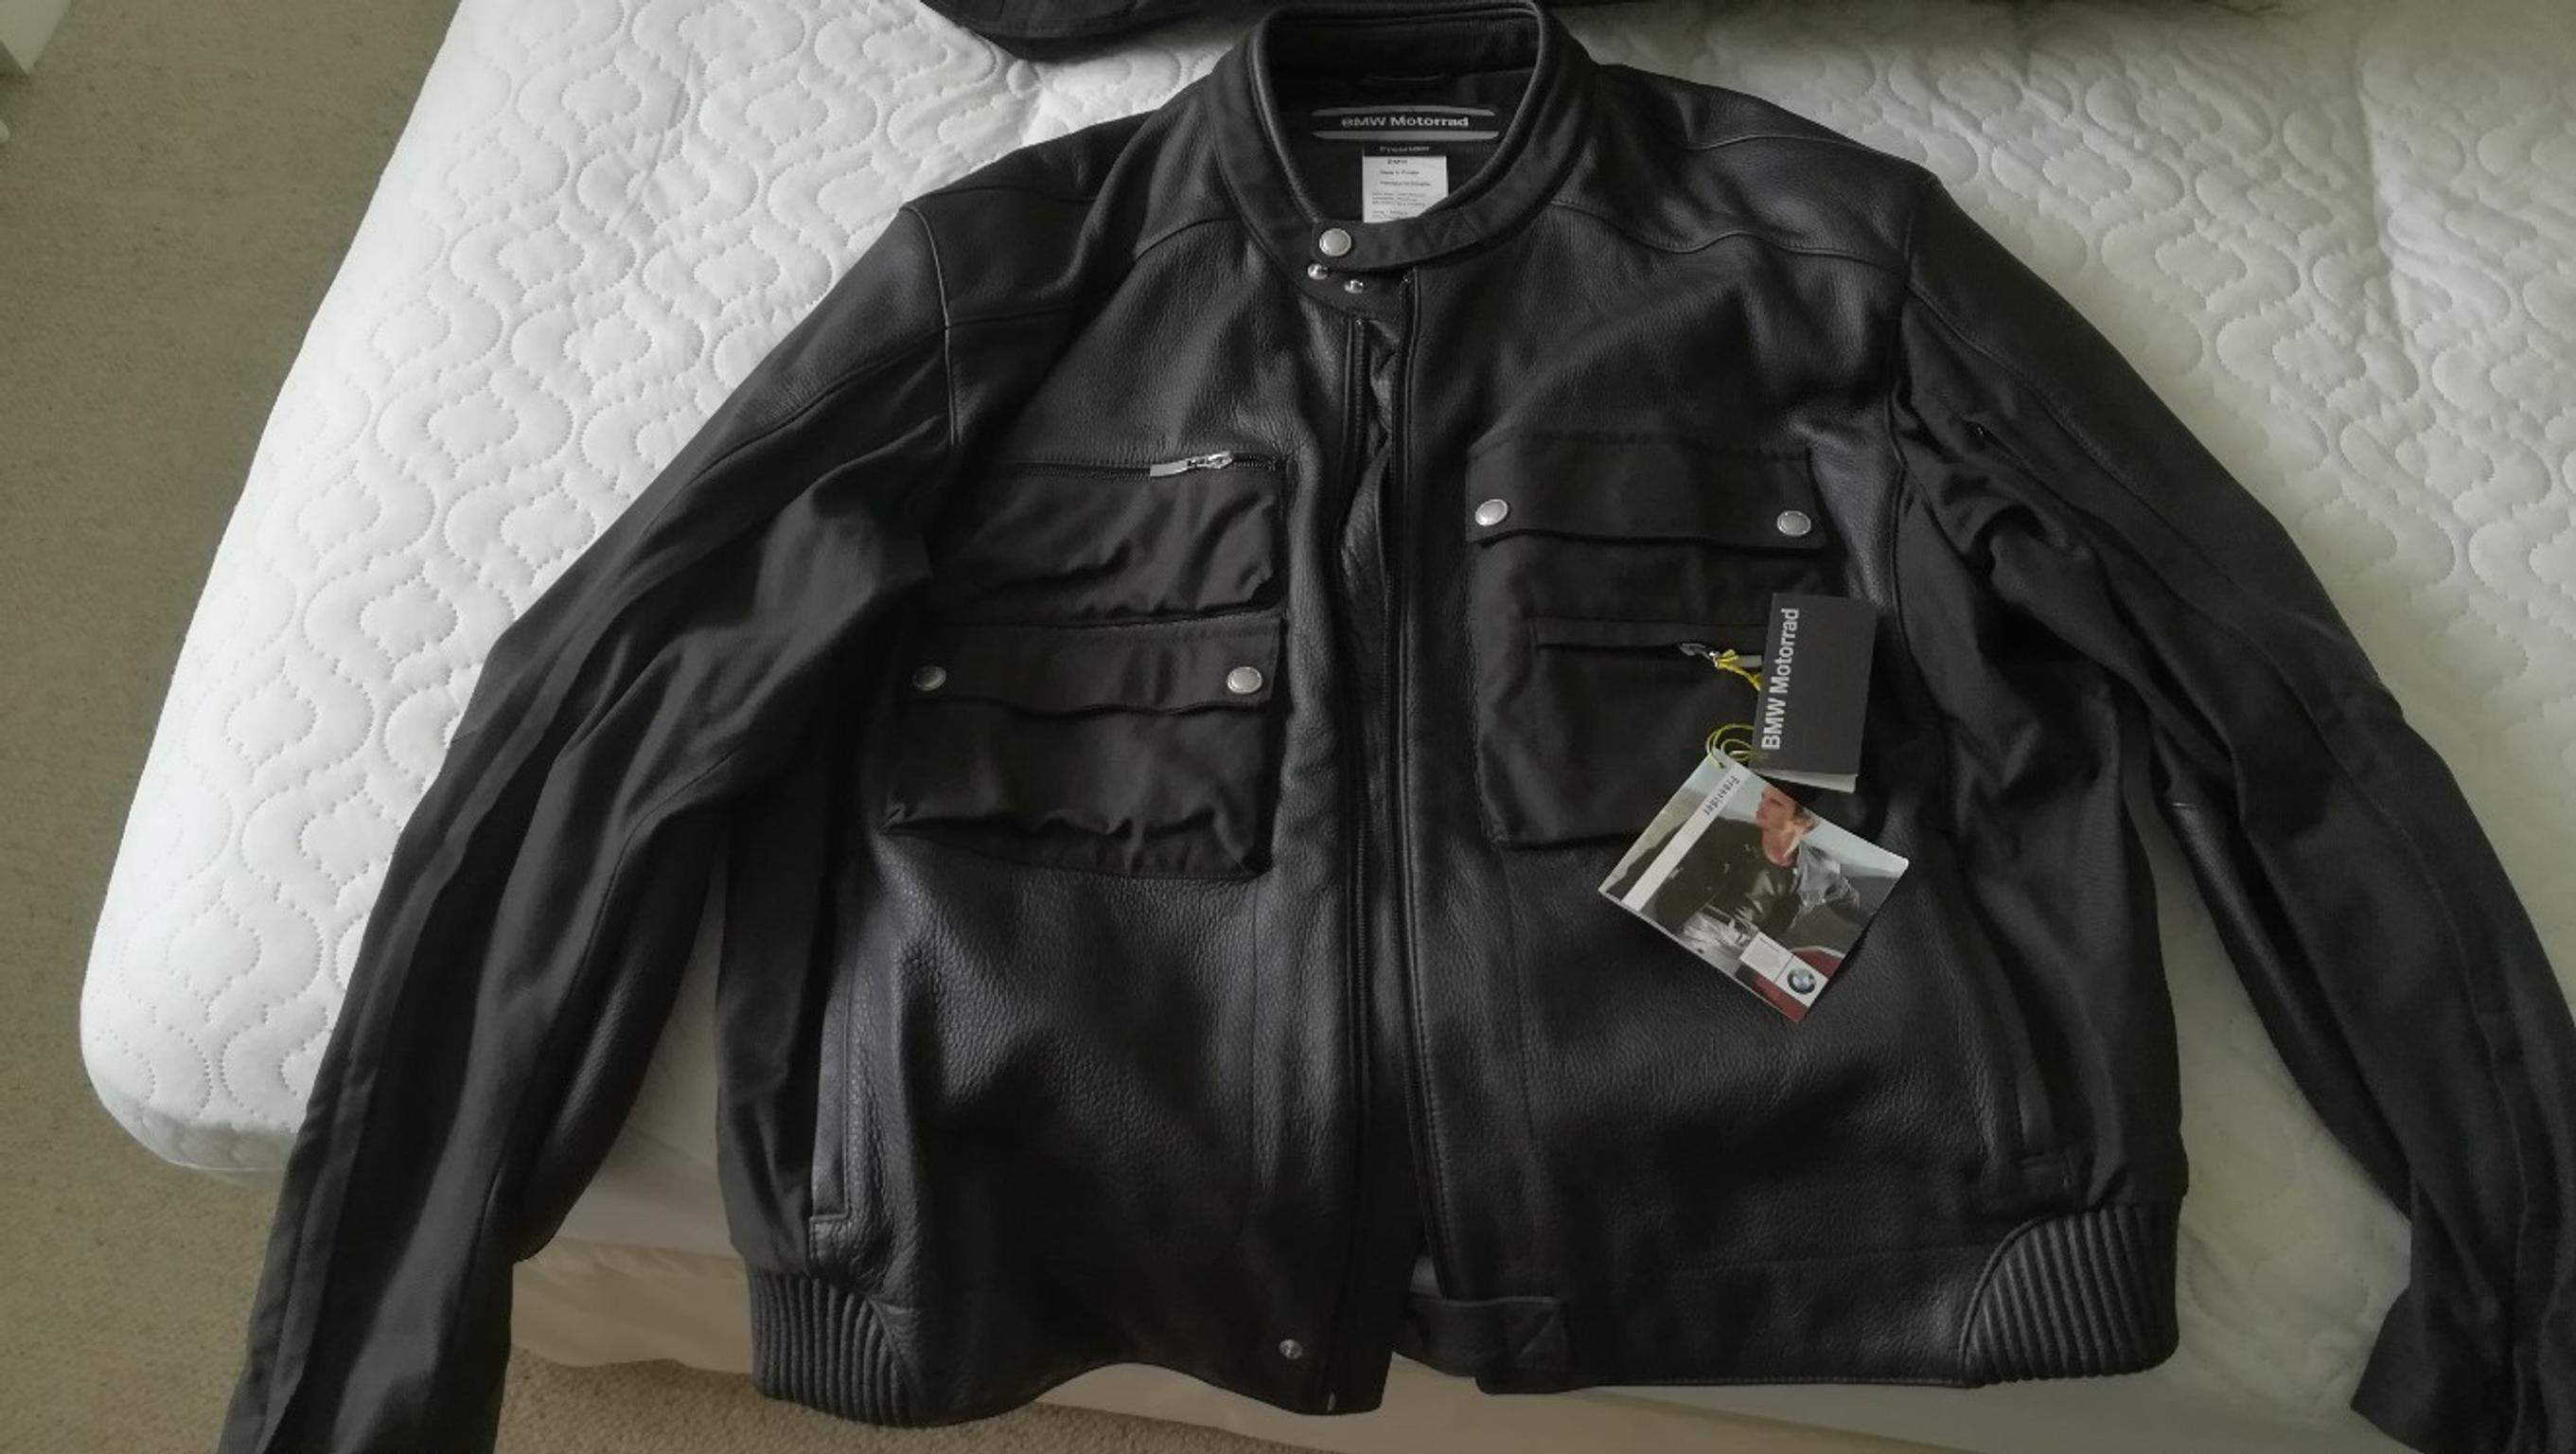 Bike Jacket In Da12 Gravesham For 200 00 For Sale Shpock